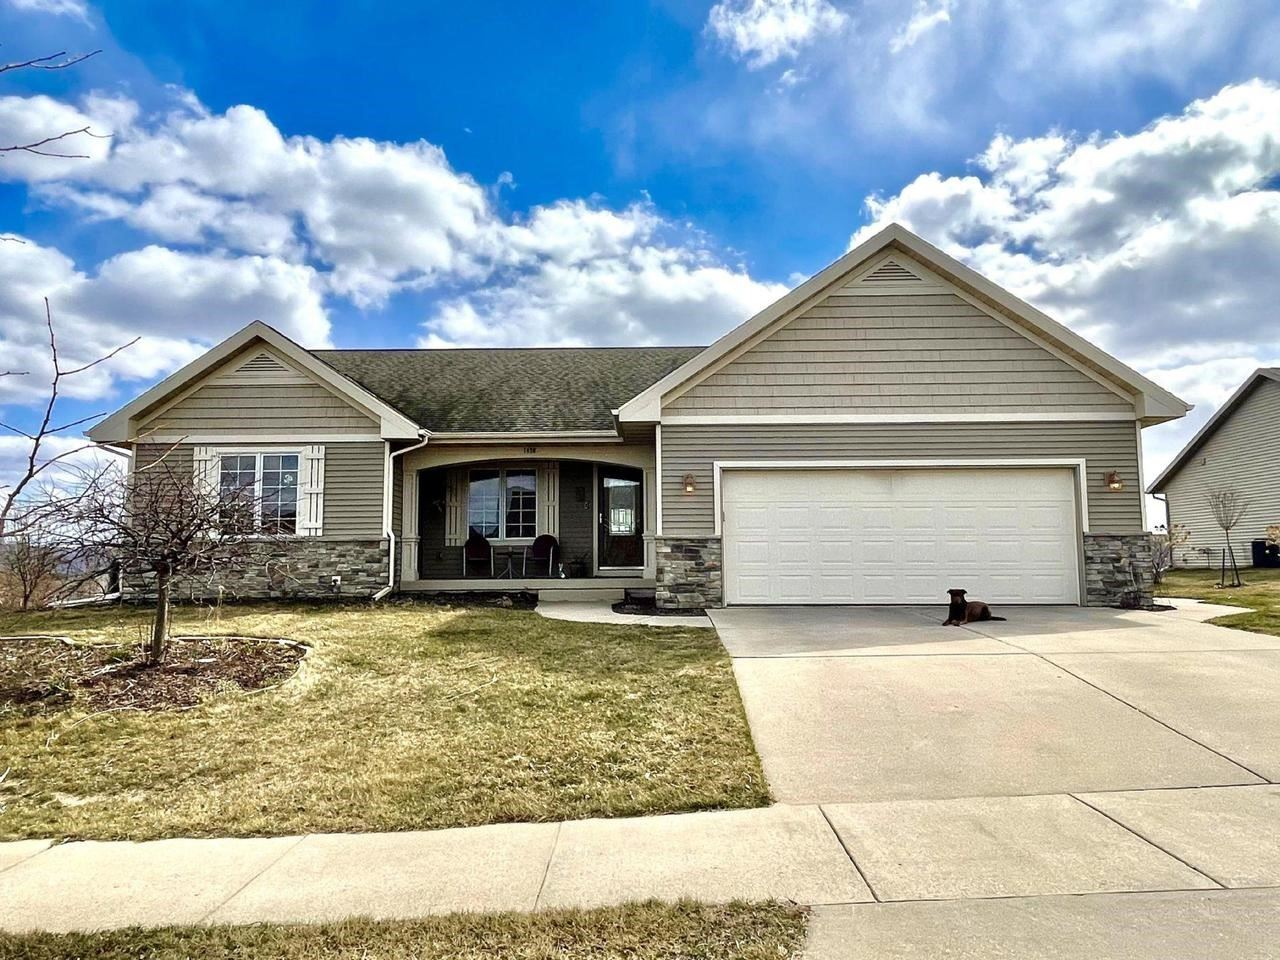 1420 20th St, Baraboo, WI 53913 - #: 374064